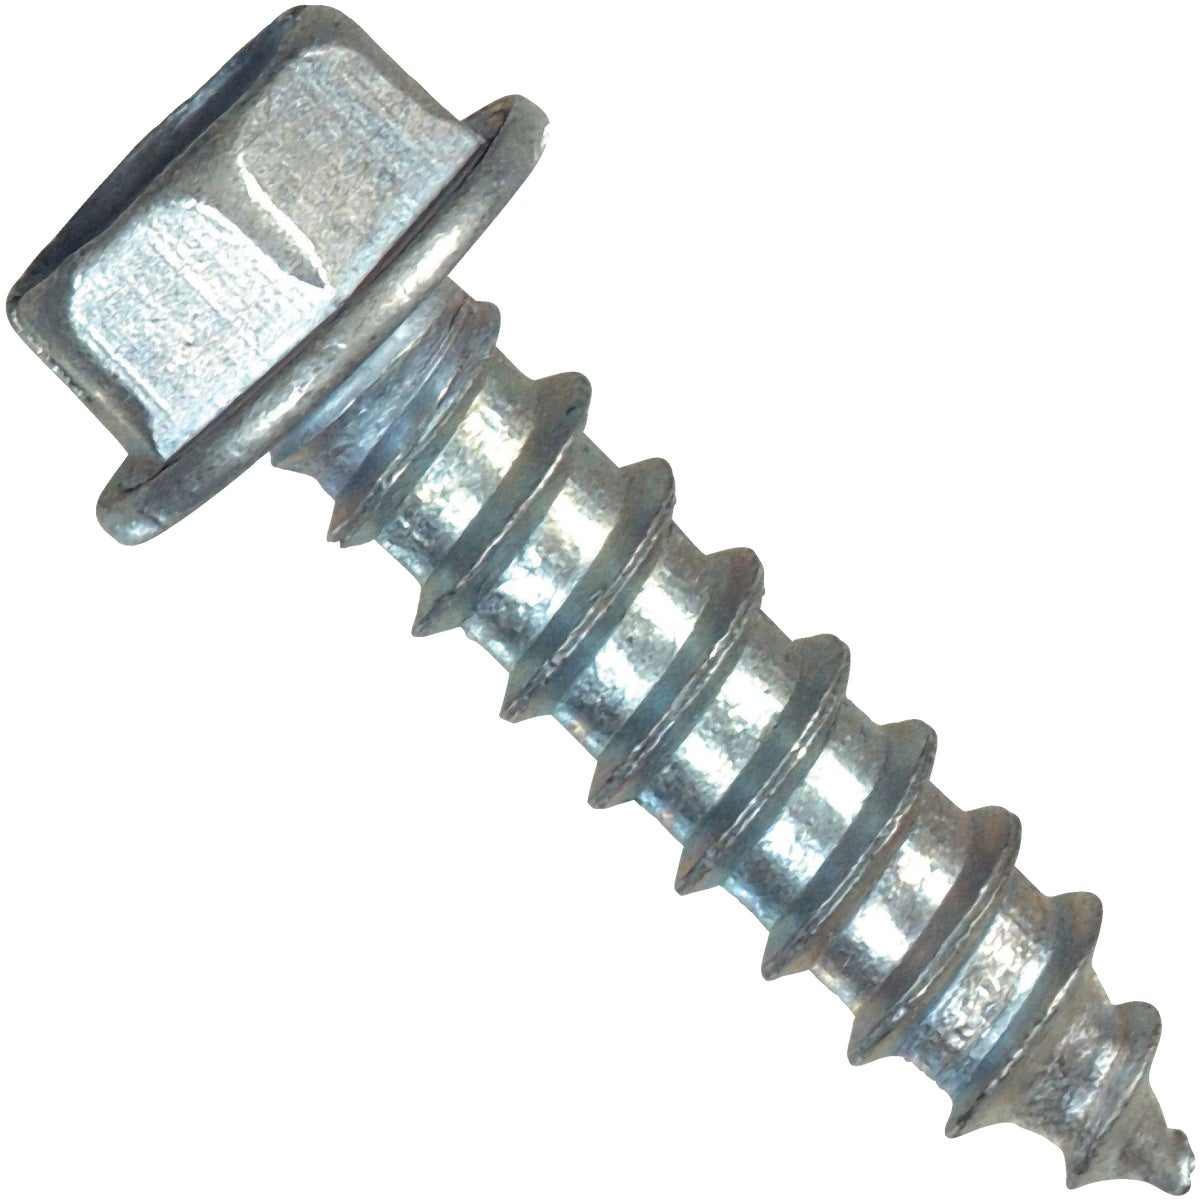 10X1-1/2 HWH ST MT SCREW - 70304 by Hillman Fastener